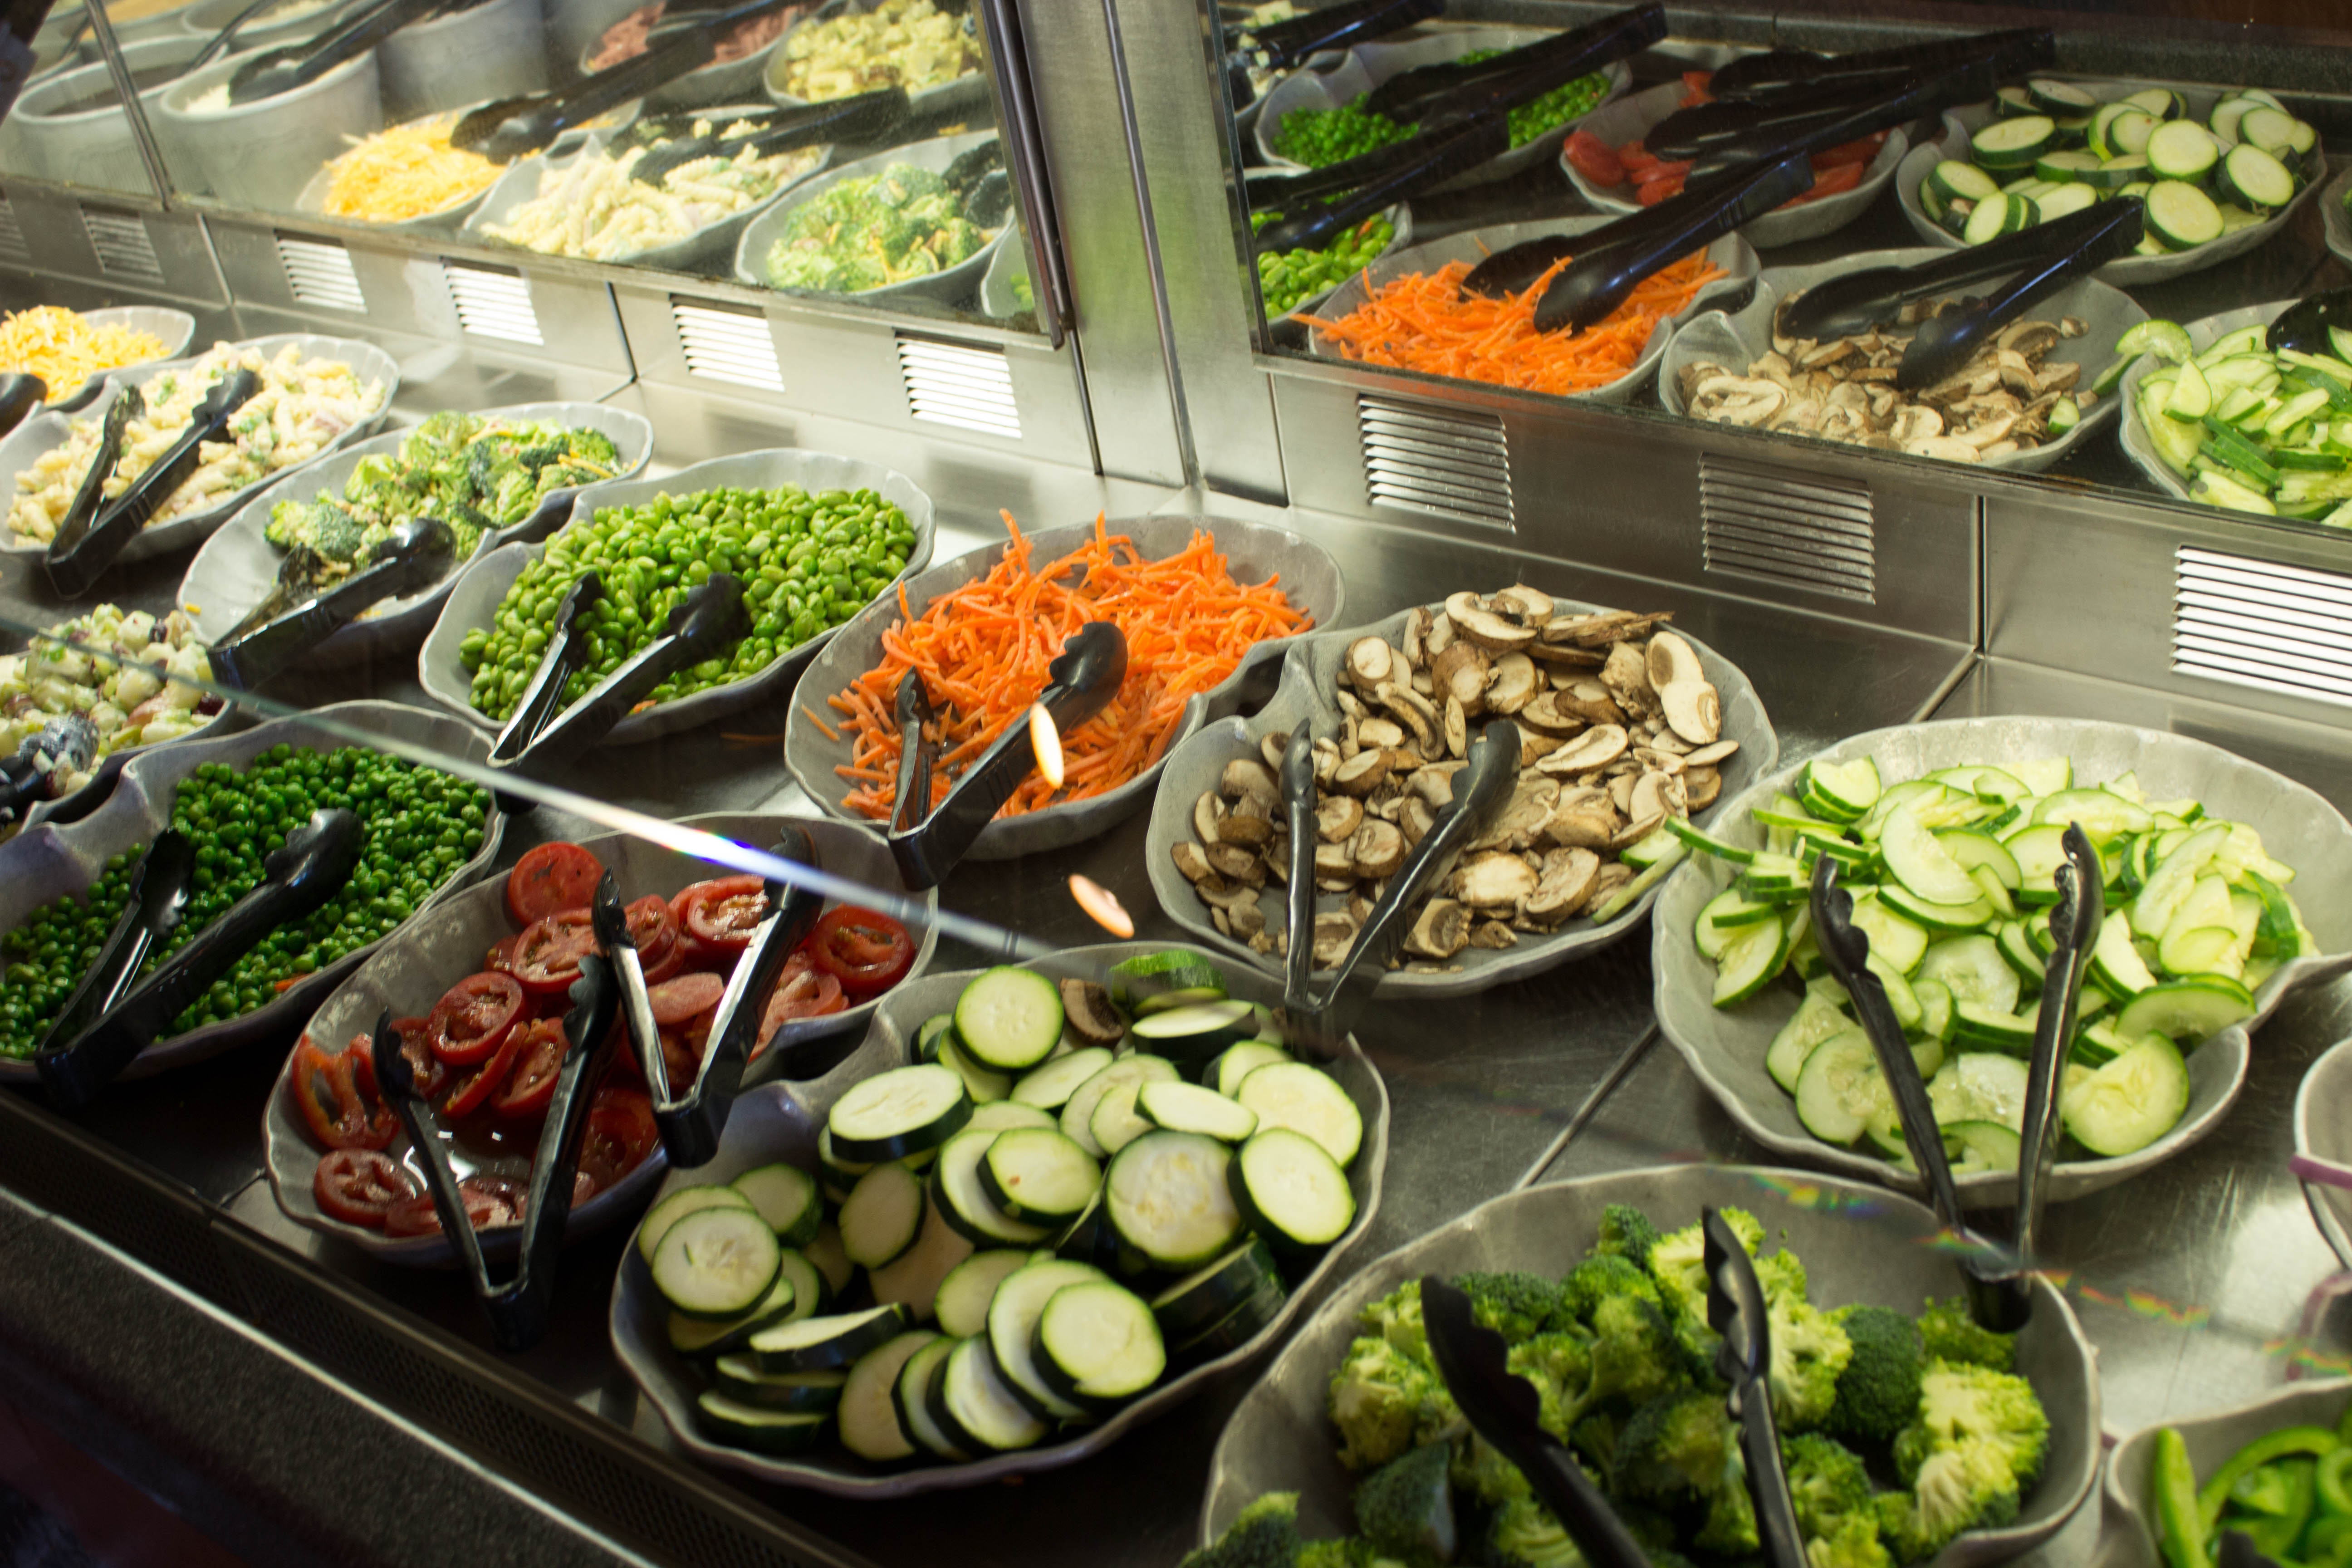 The Beauty And Bounty Of Steakhouse Salad Bar Eater